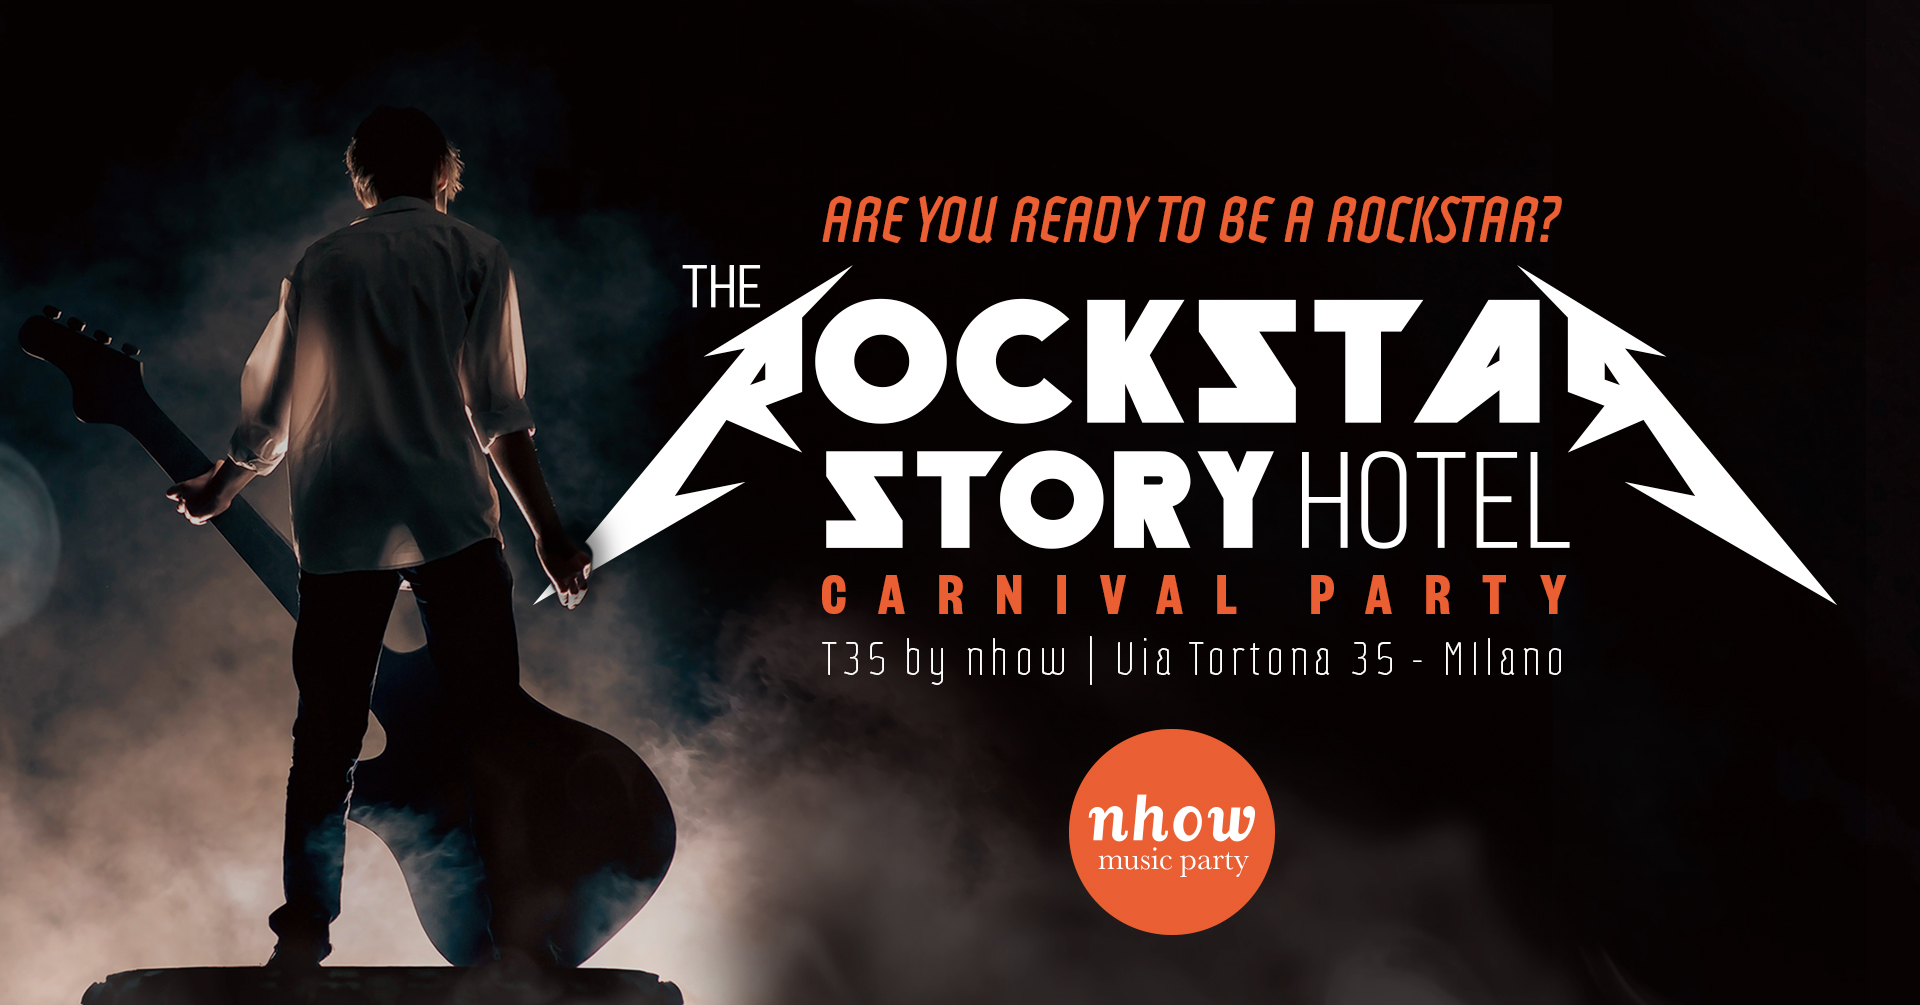 nhow hotel private party The Rockstar Story Hotel / Carnival Party | YOUparti